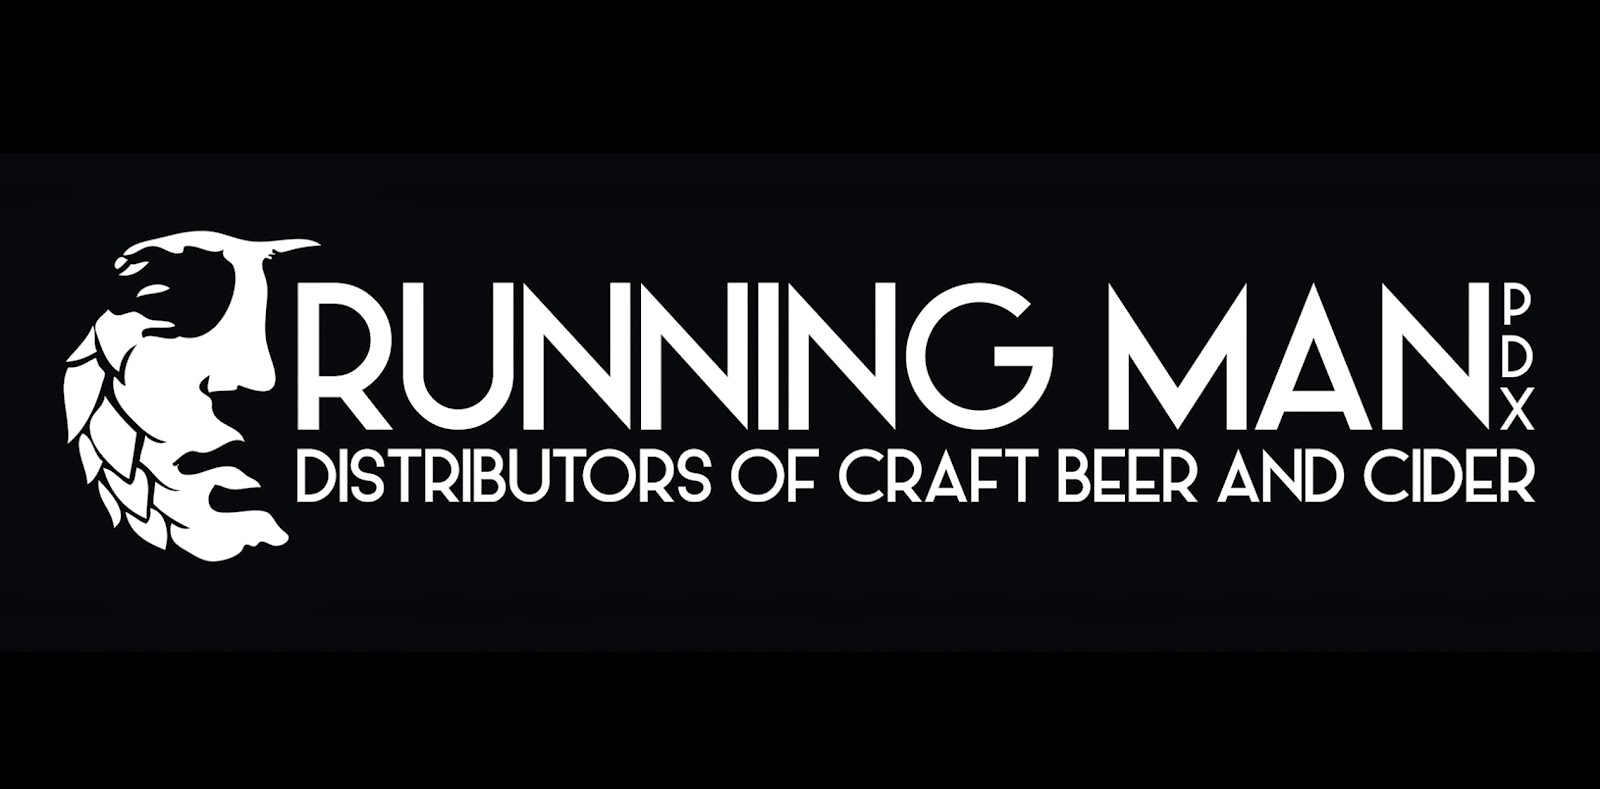 8a0ba118 A new alternative craft beer and cider distributor called Running Man is  launching in Portland with the goal of filling the niche market for small  and ...